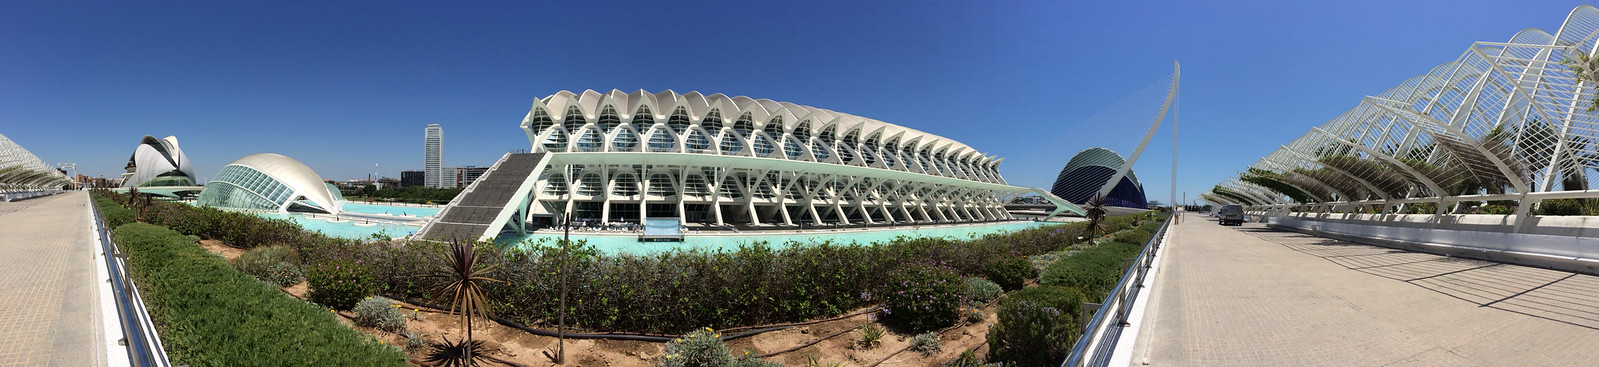 Panorama of the City of Arts and Sciences